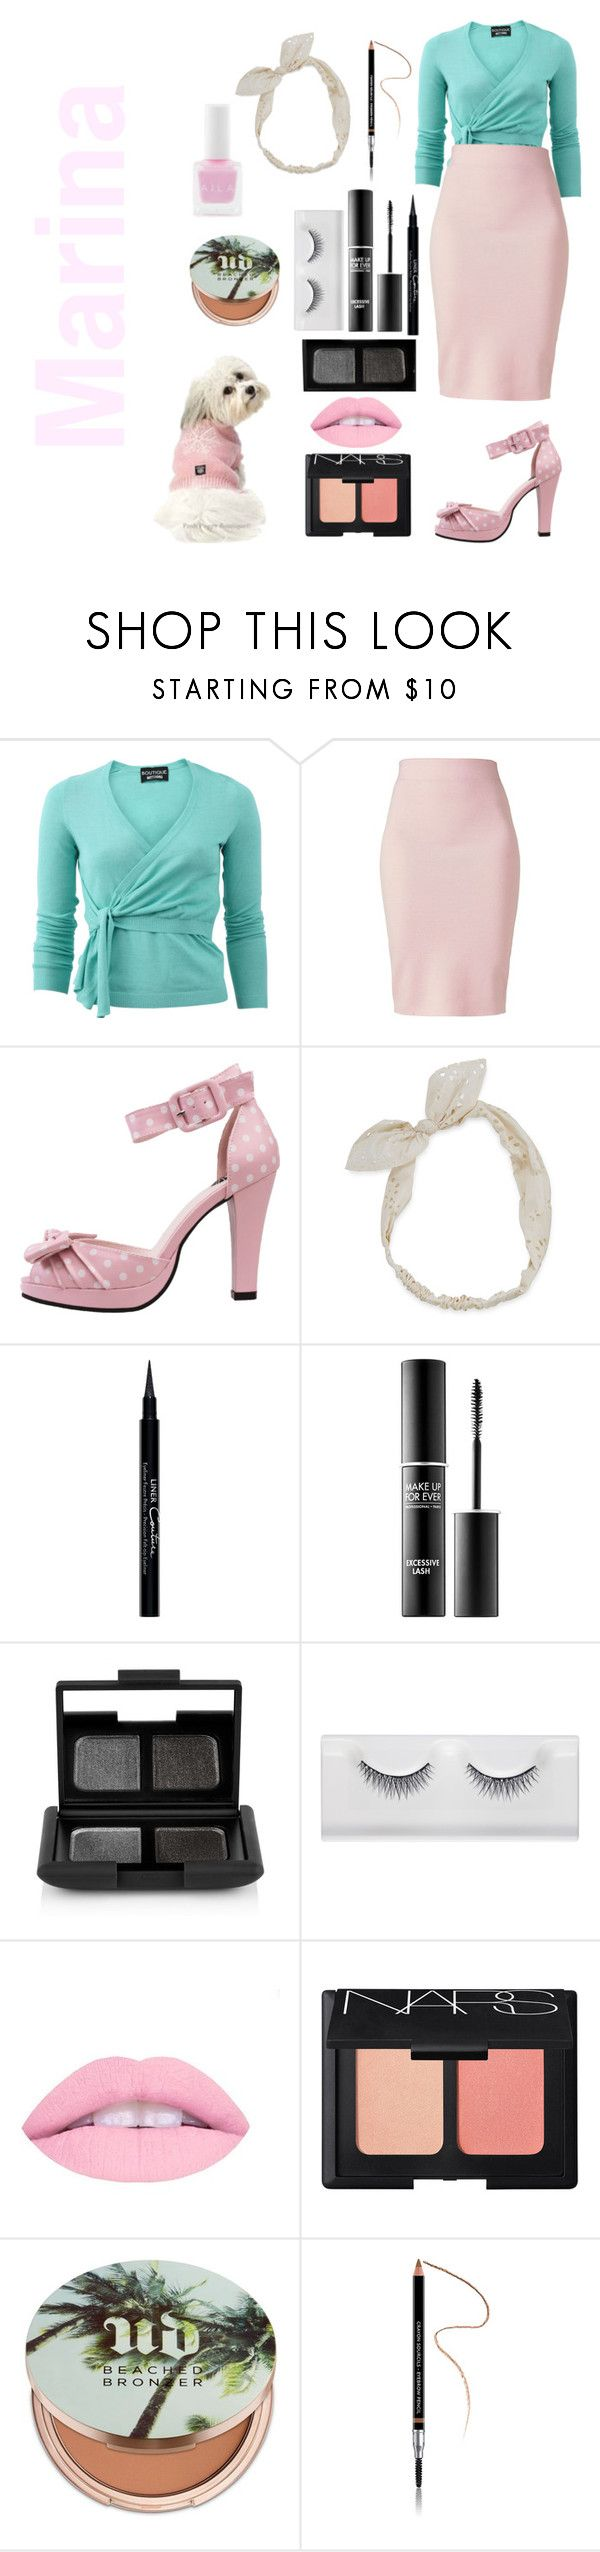 """""""Marina and the diamonds"""" by moonlight2004 ❤ liked on Polyvore featuring Boutique Moschino, Winser London, T.U.K., Carole, Givenchy, MAKE UP FOR EVER, NARS Cosmetics and Urban Decay"""